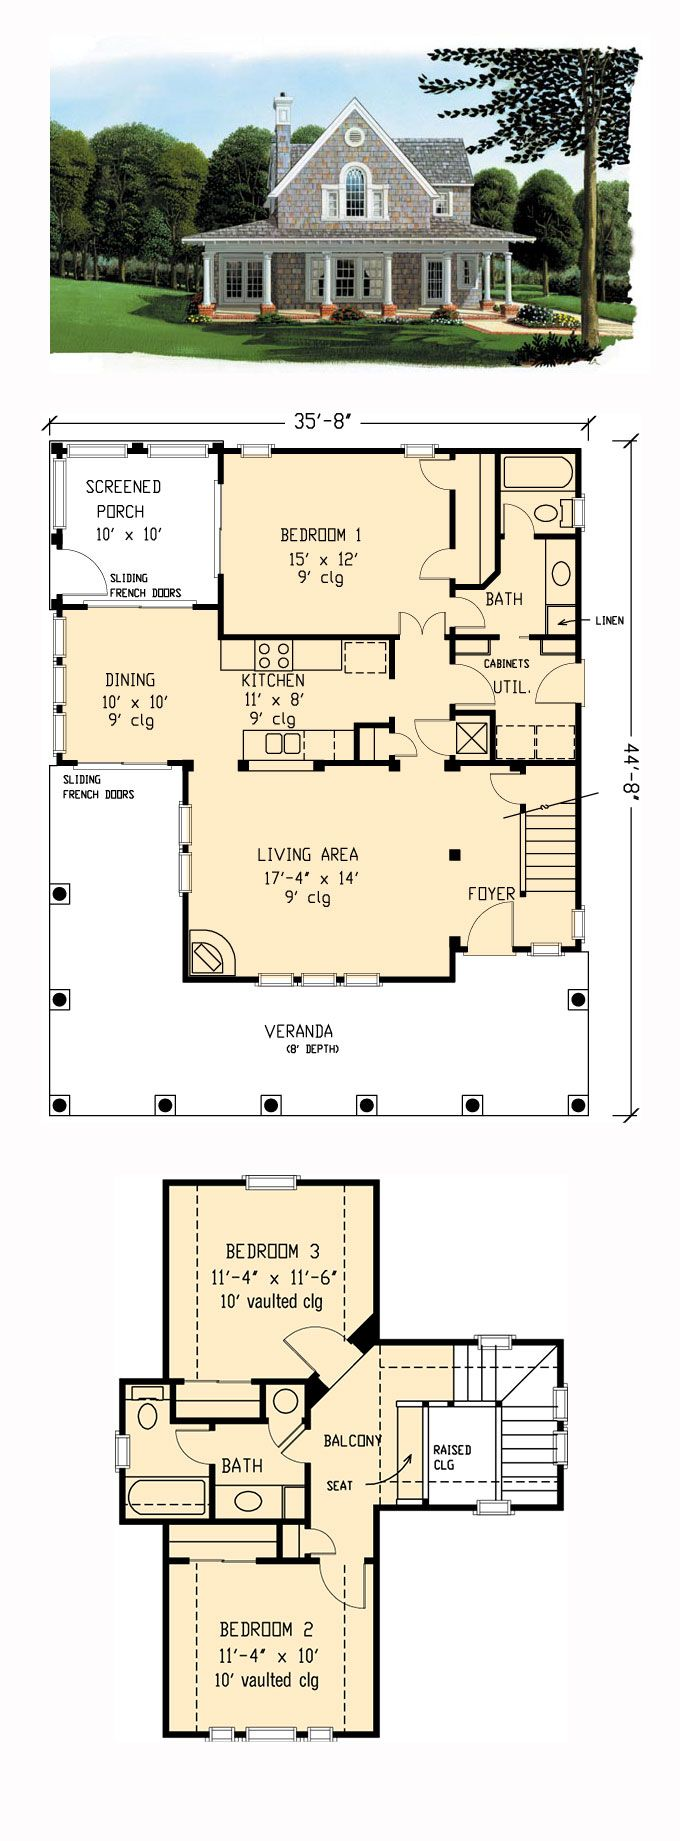 Farmhouse style cool house plan id chp total living area